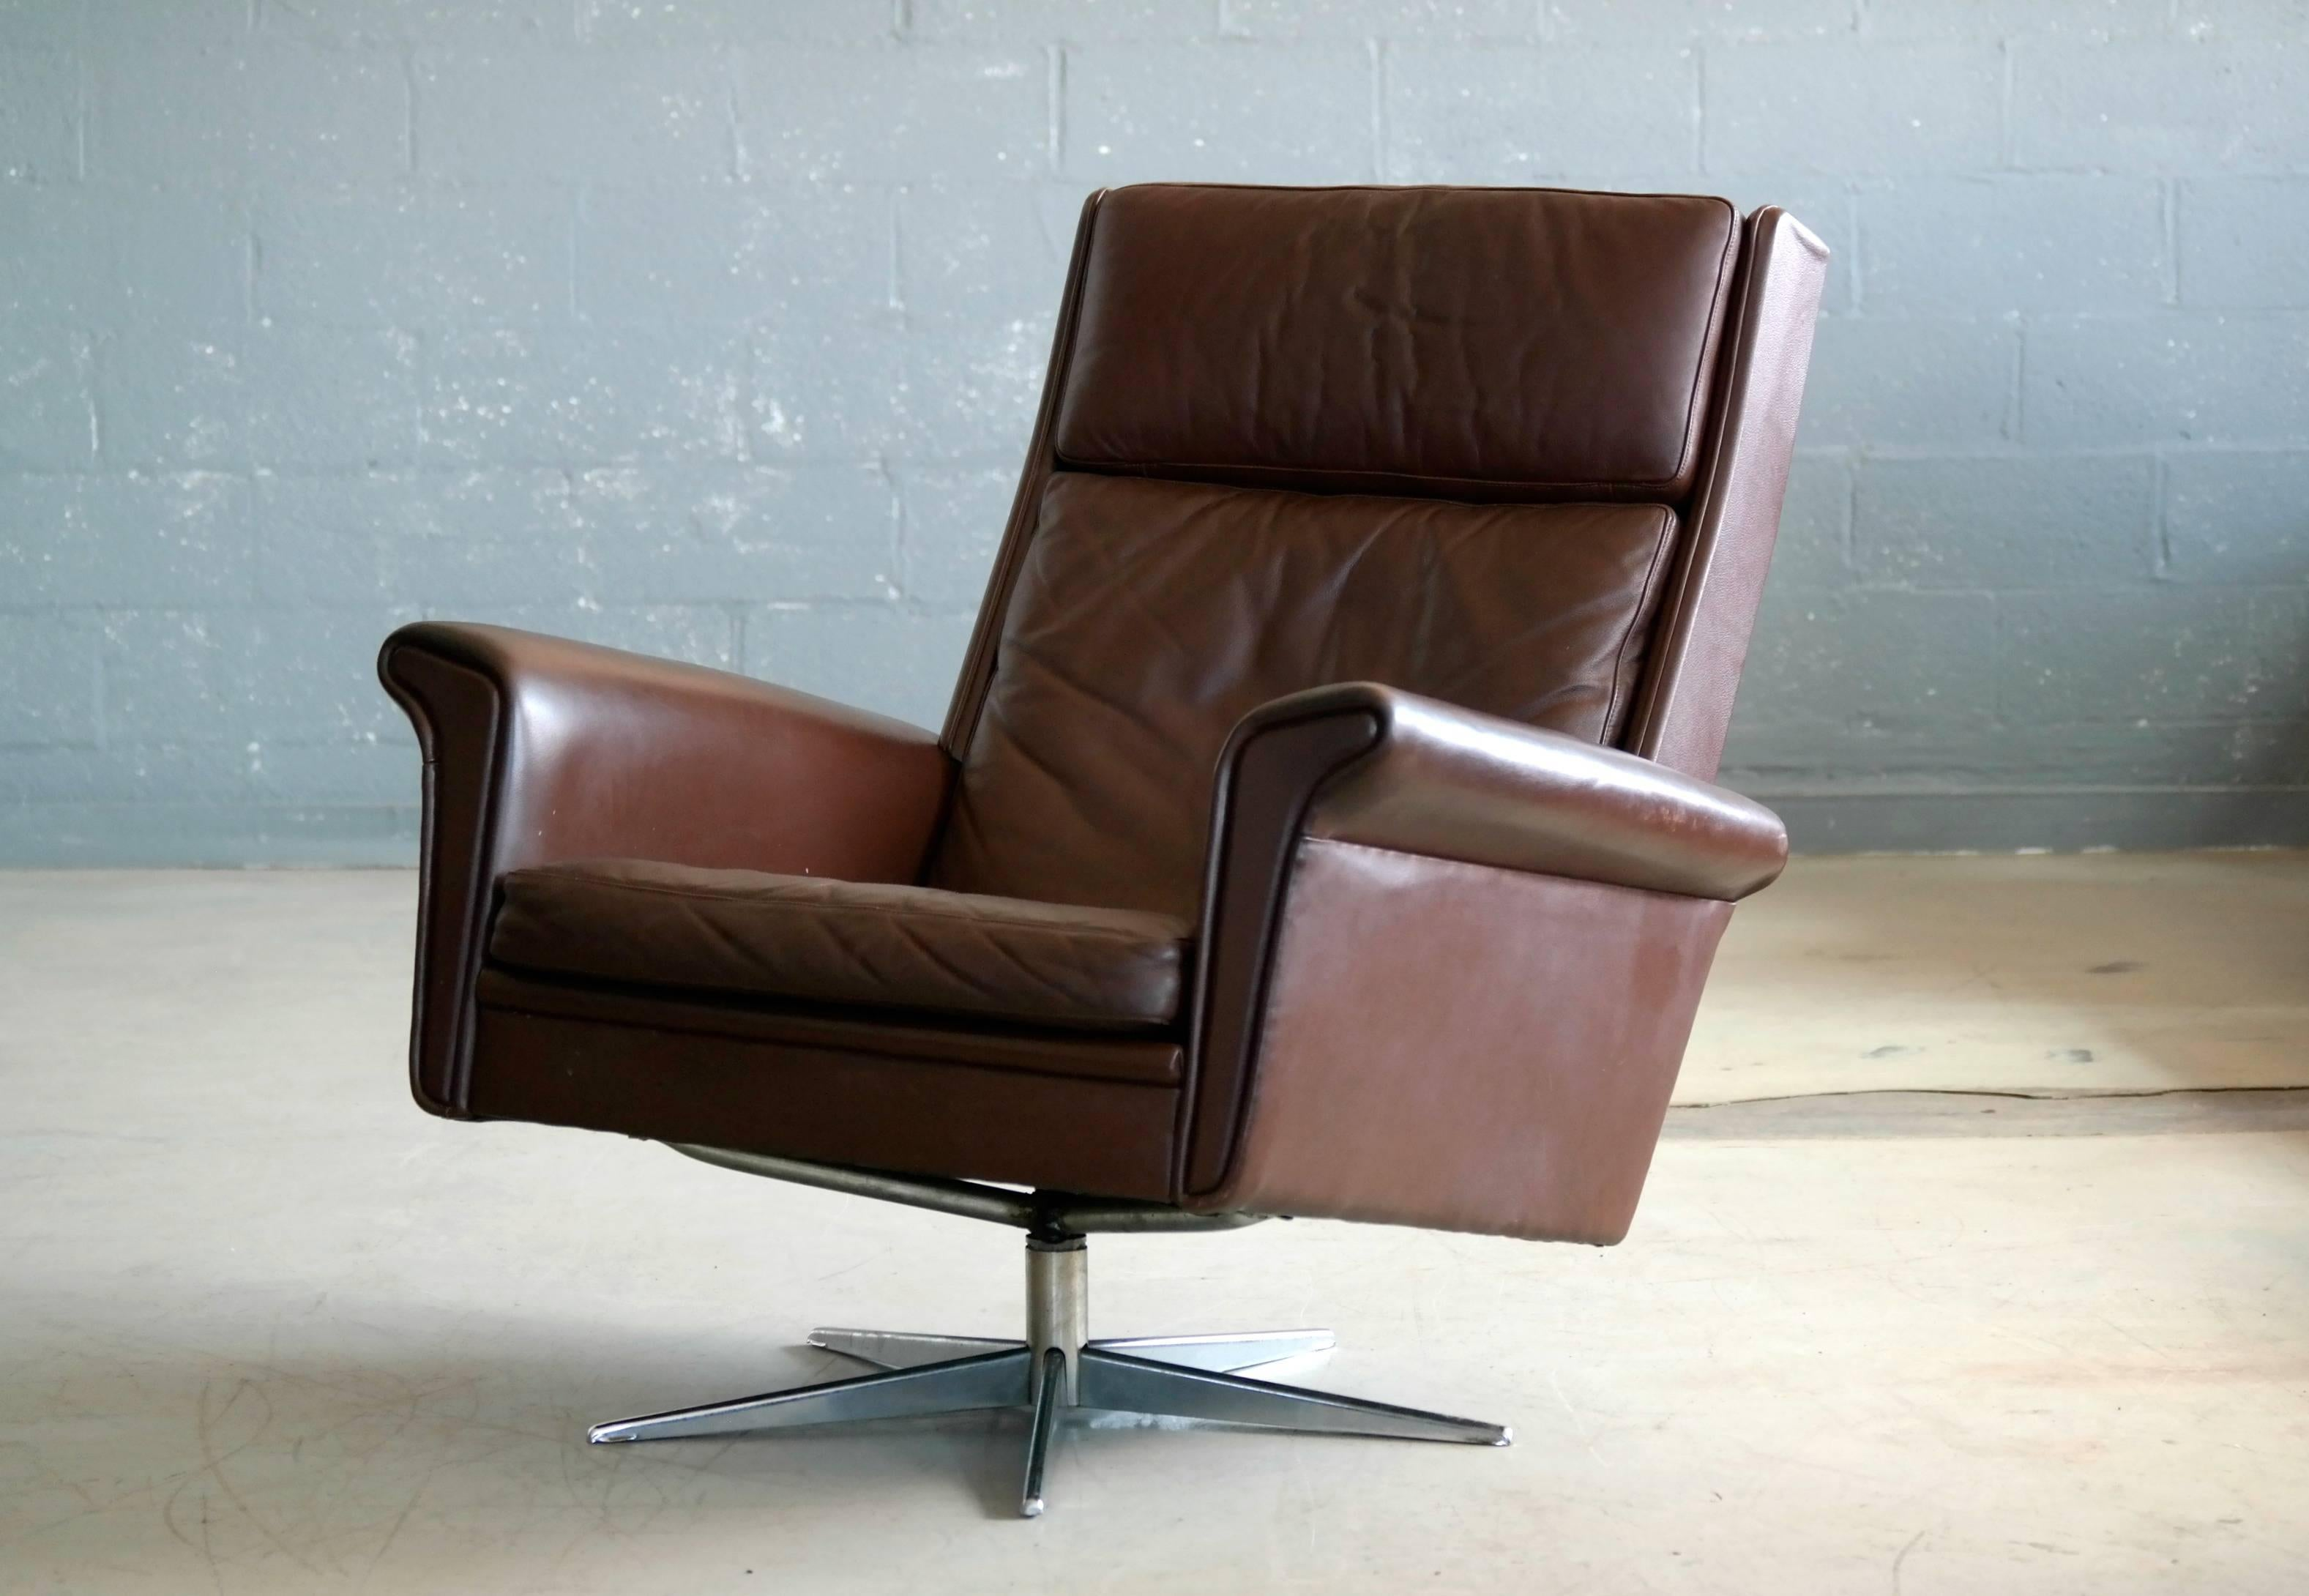 Danish High Back Swivel Lounge Chair In Chocolate Leather - Leather High Back Lounge Chair